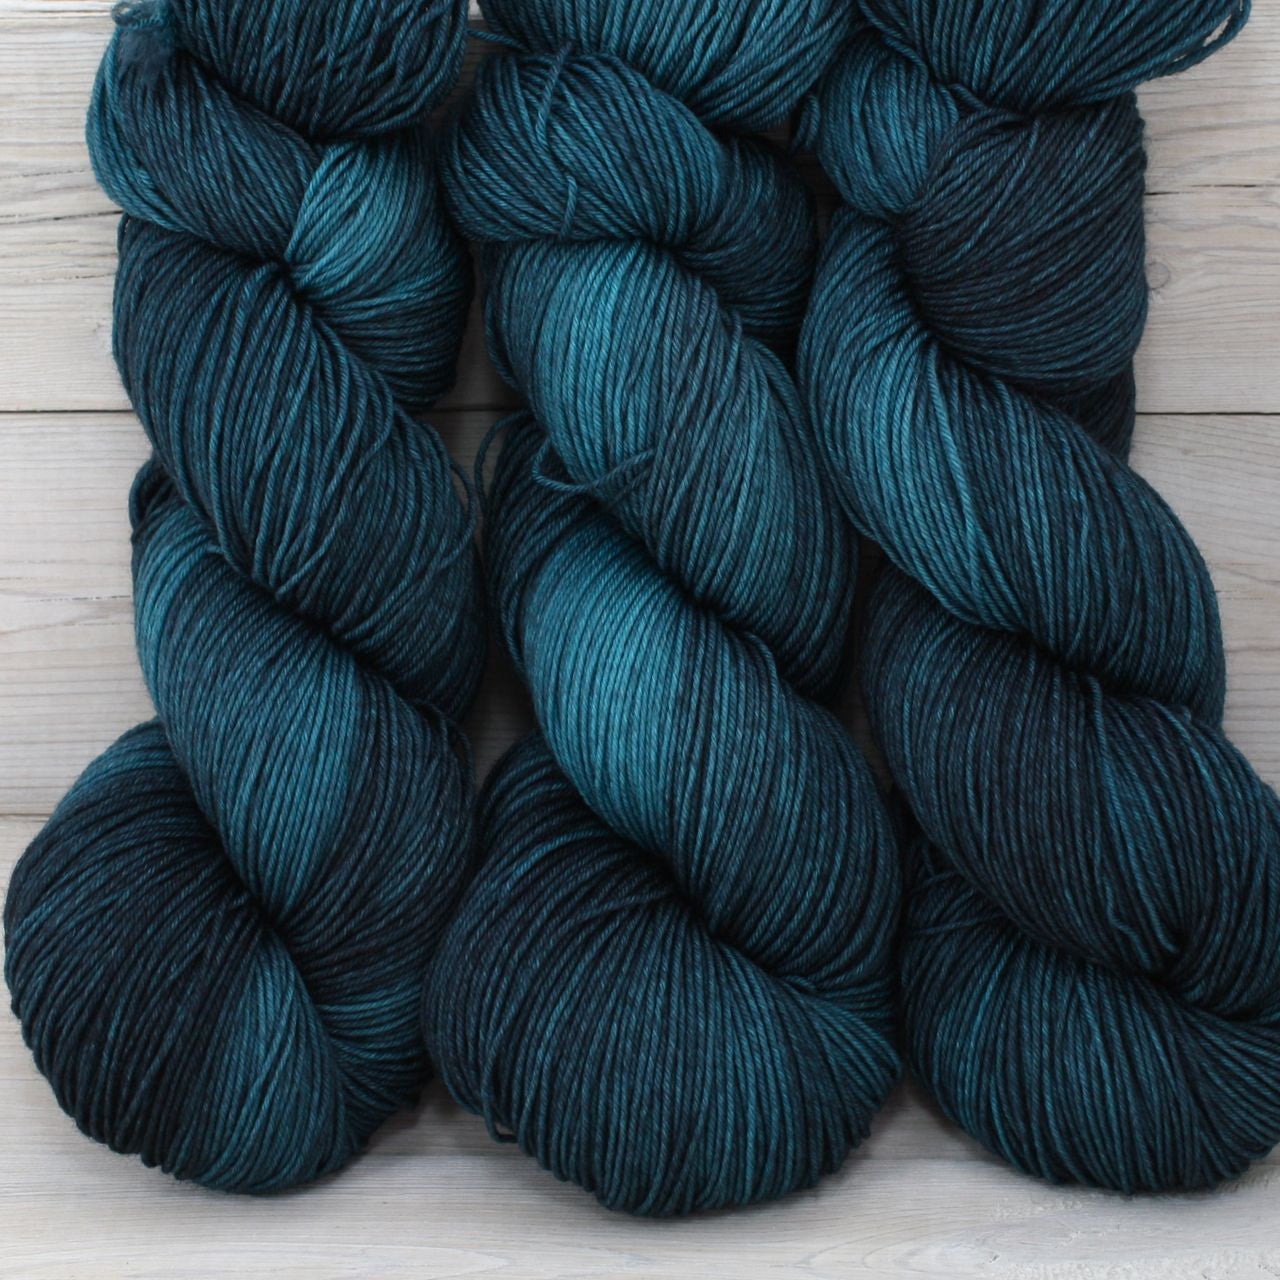 Athena Sock Yarn | Colorway: Techno